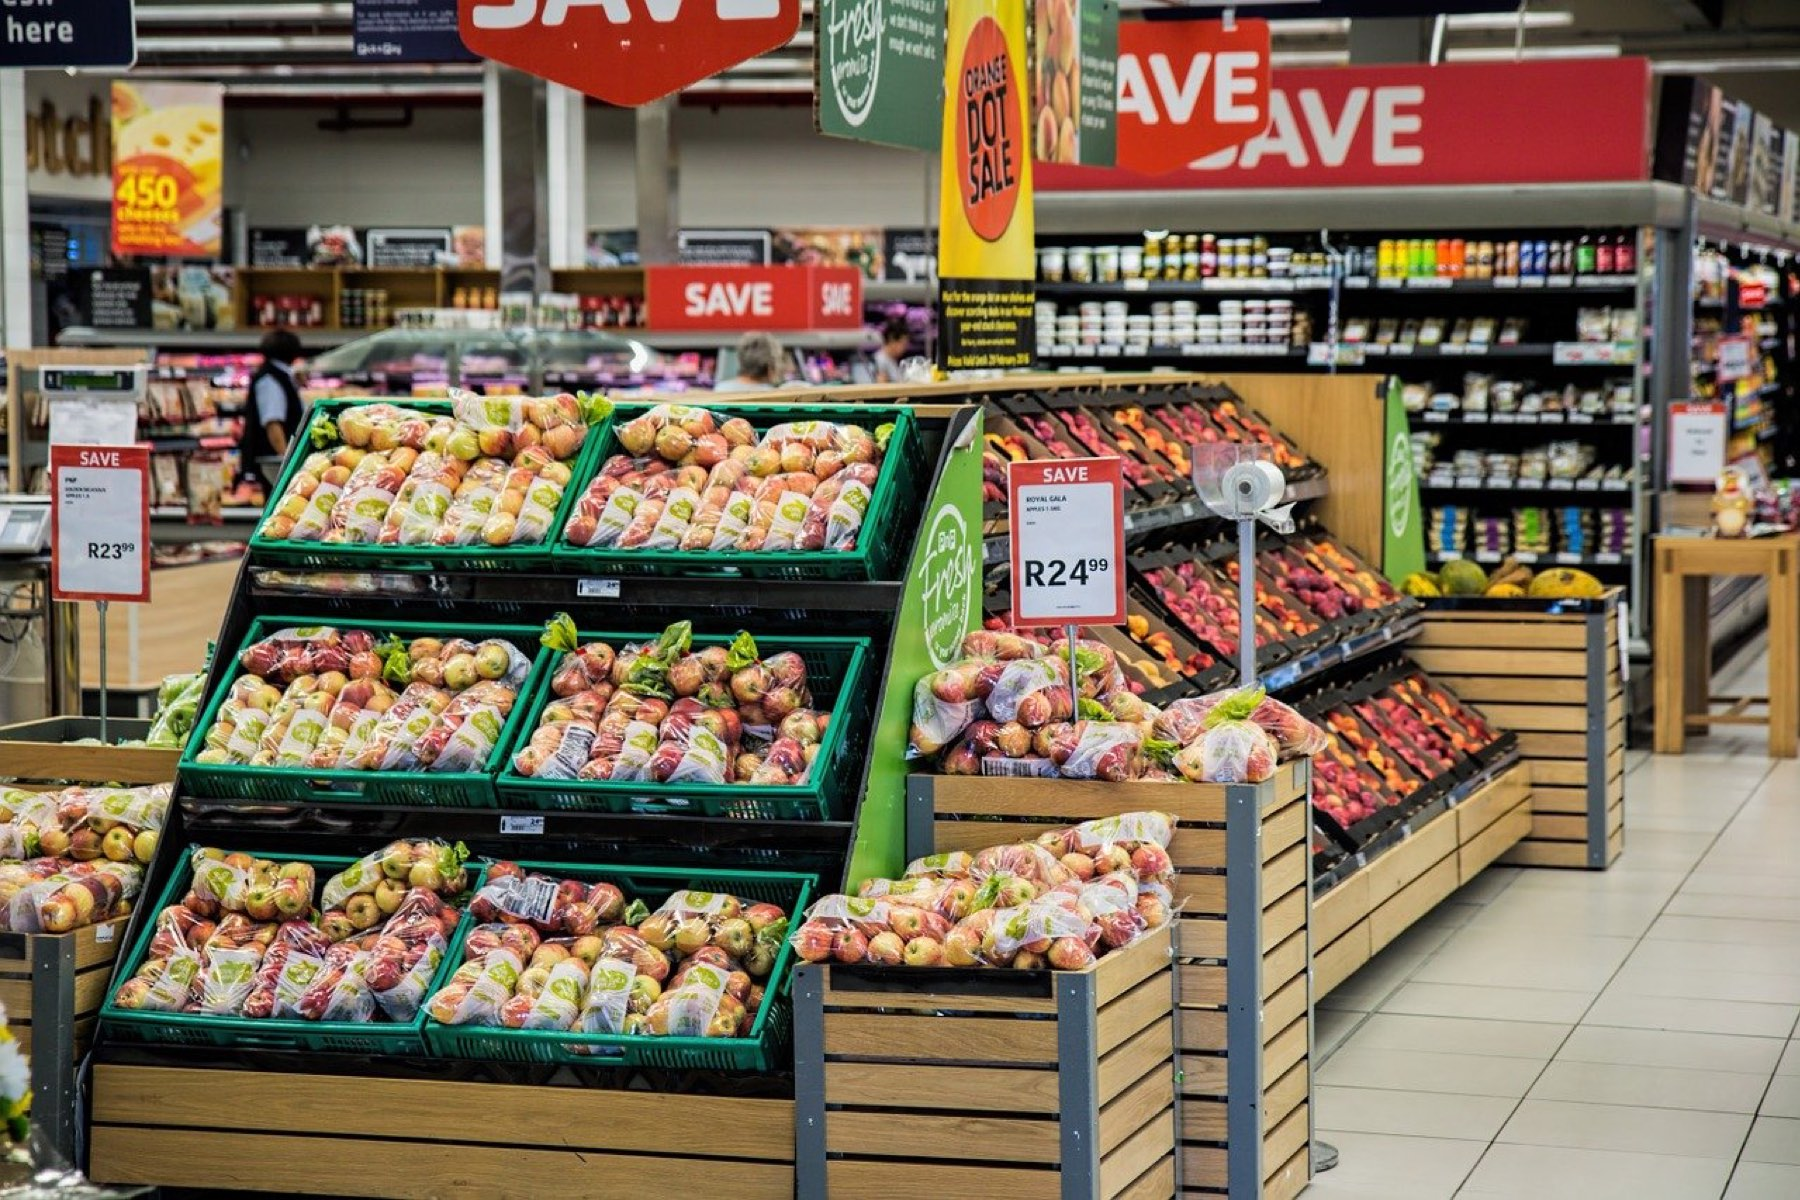 Photo of interior of grocery store showing fruit and other food products.